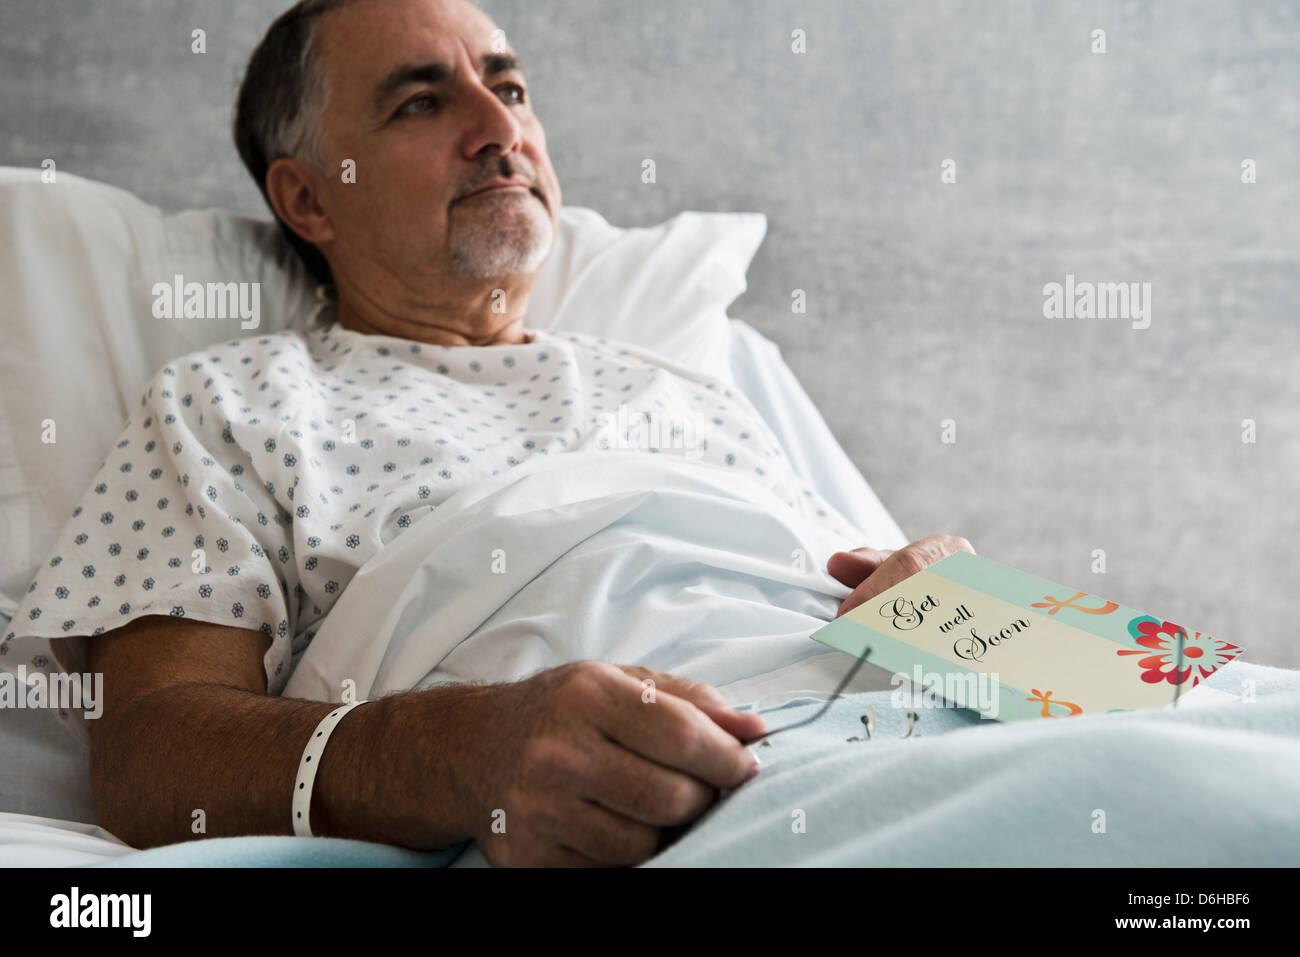 Male hospital patient with get well soon card - Stock Image